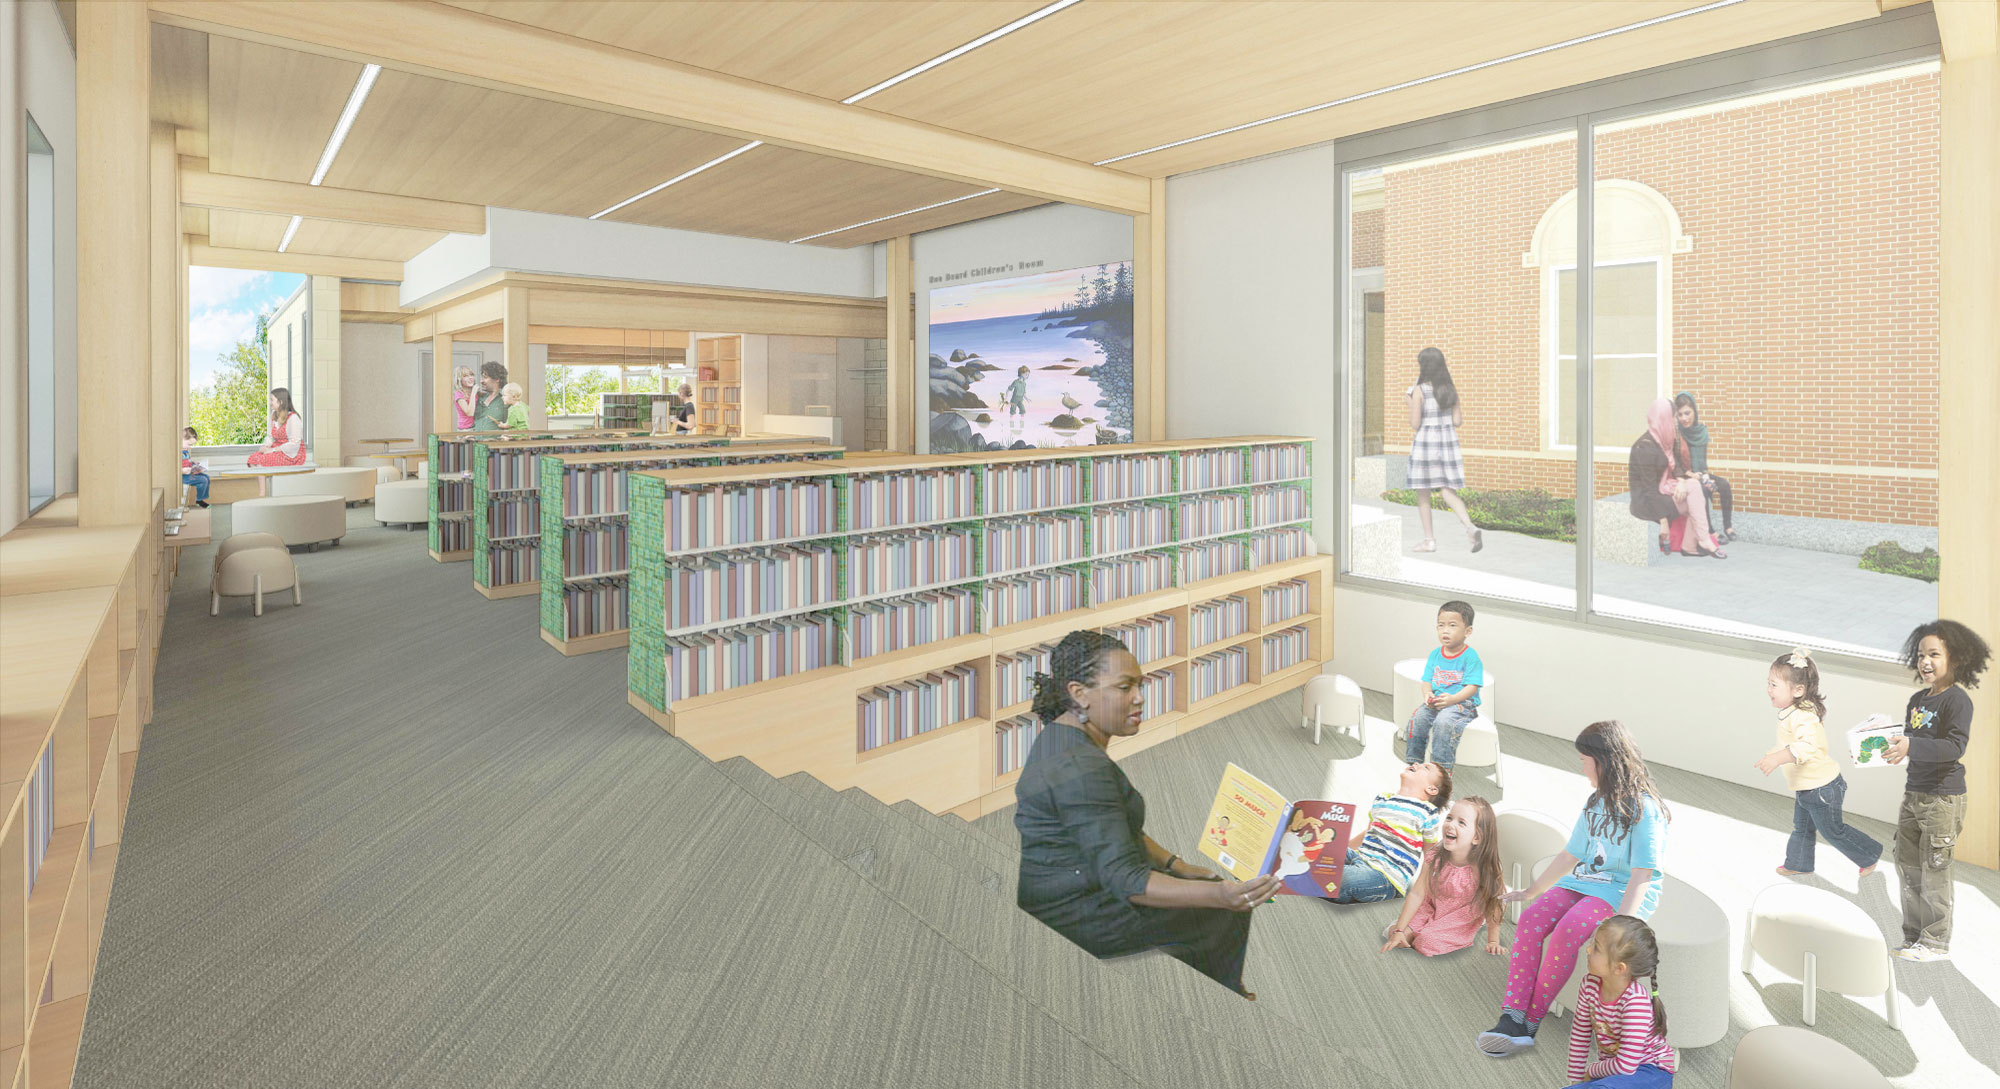 Artist's rendering of the new Children's Storytime Area